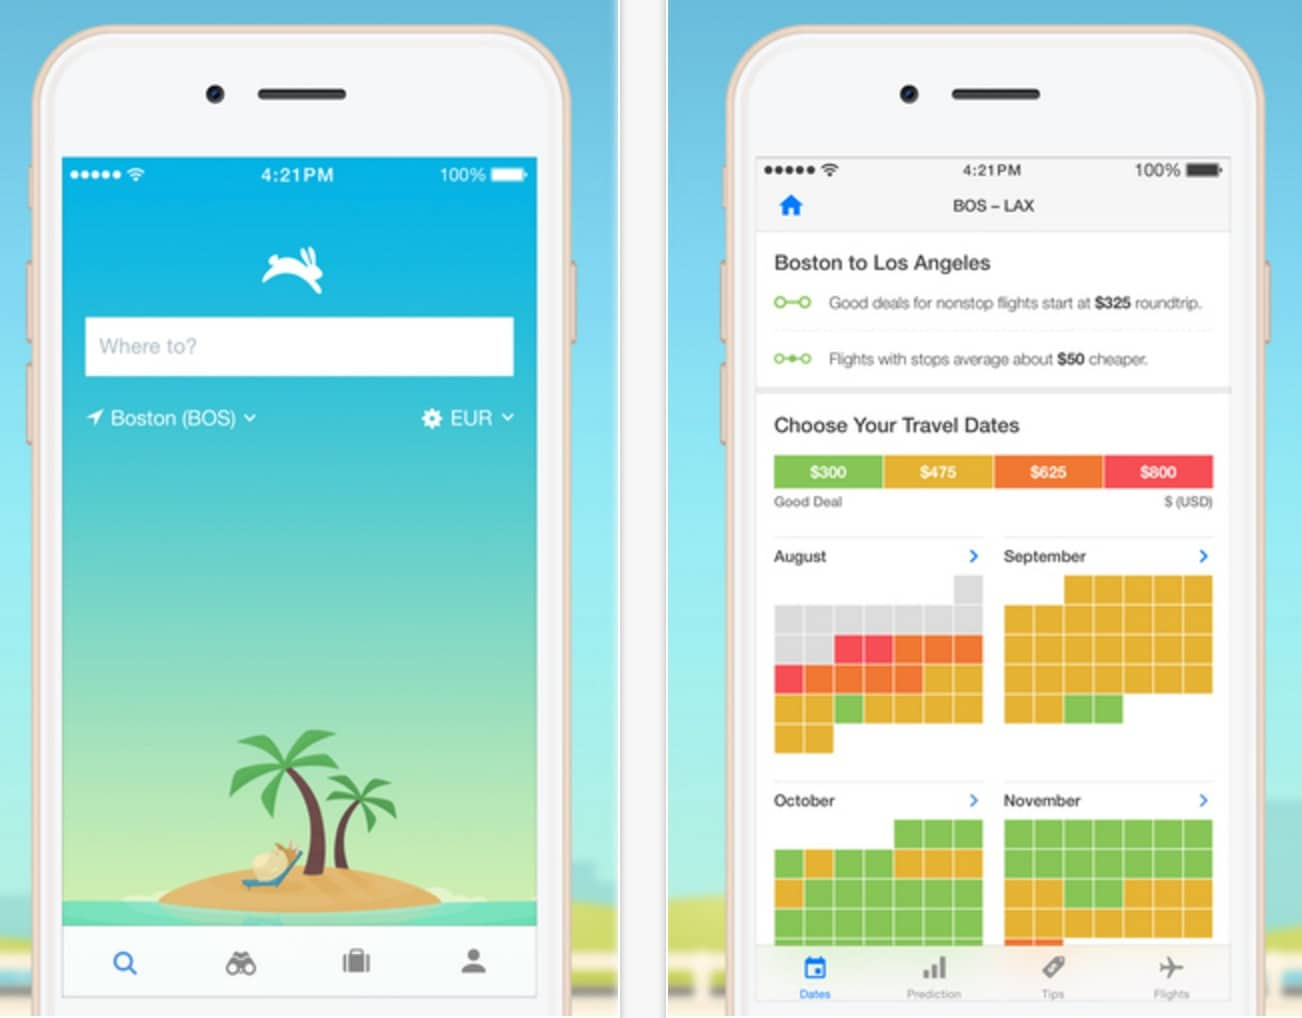 Hopper Flights App For Windows - With budget travel in mind here are some of the best apps for scoring cheap flights